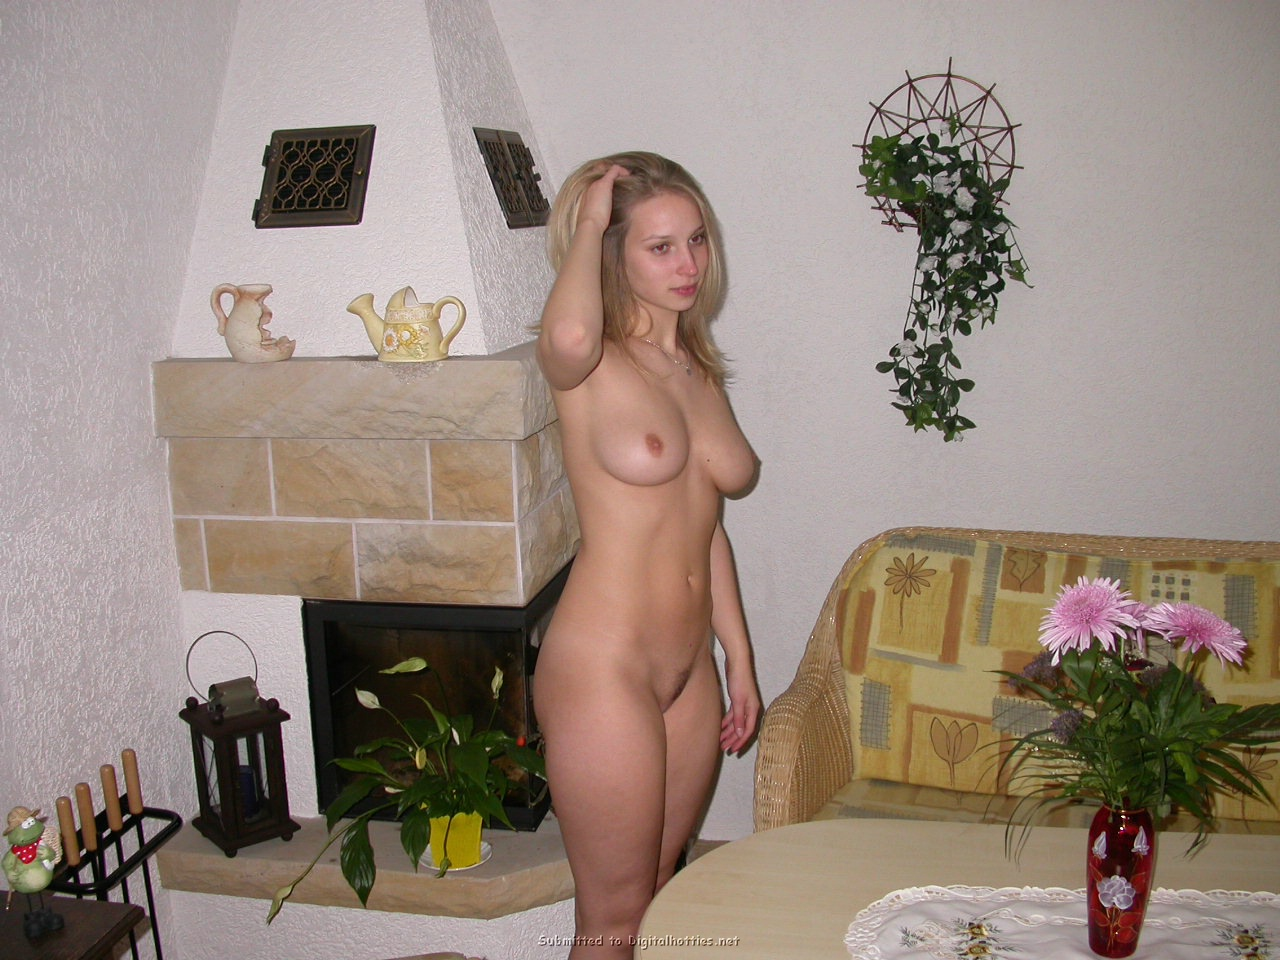 Love naked hotties